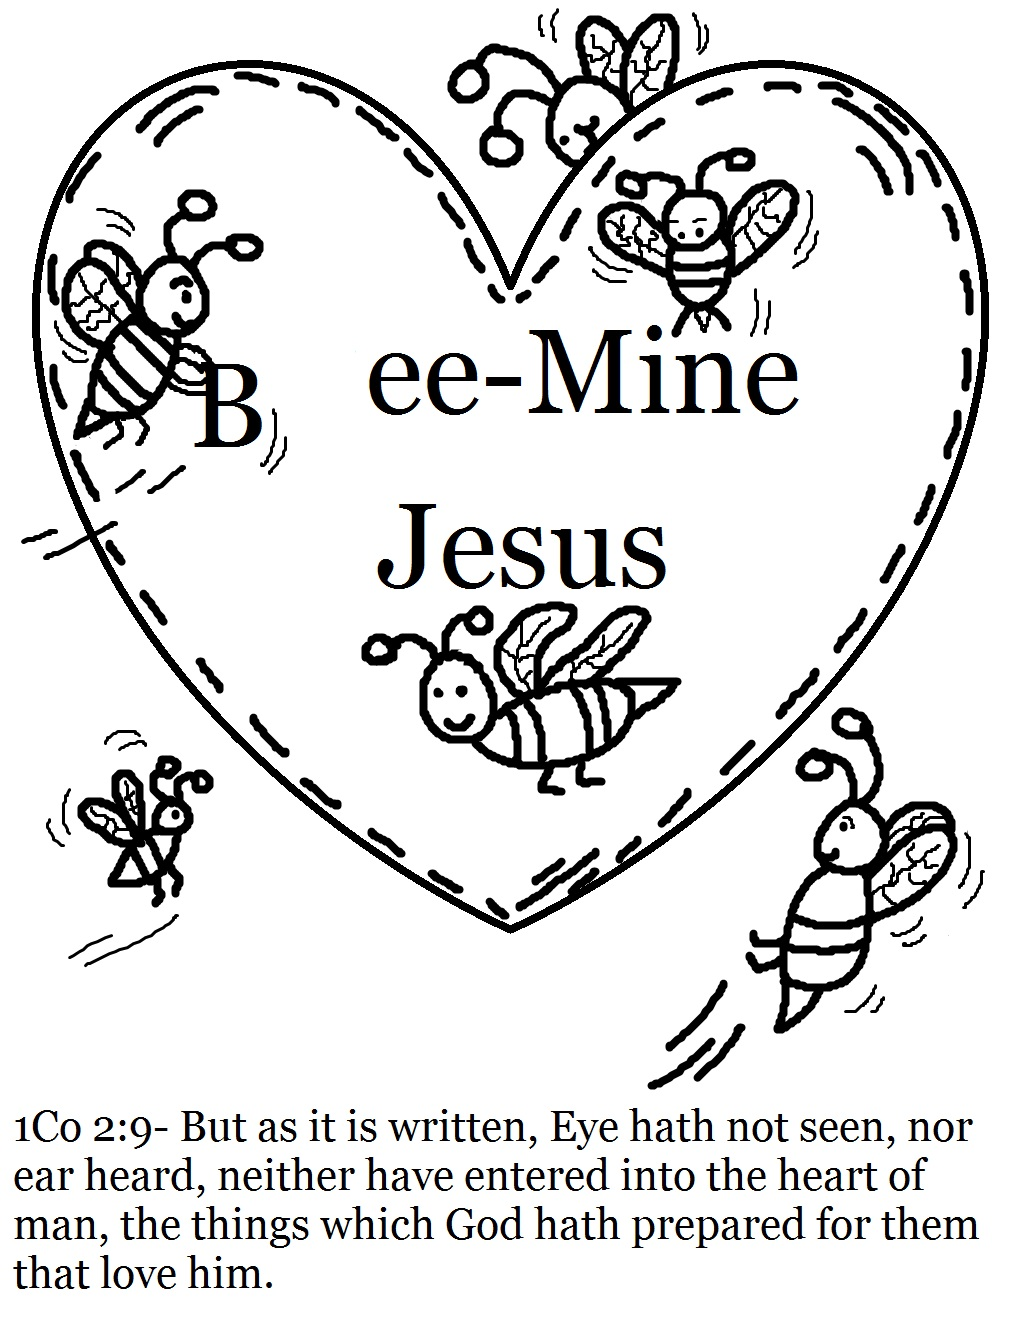 Coloring Pages Valentines Day  minnesota miranda  church house